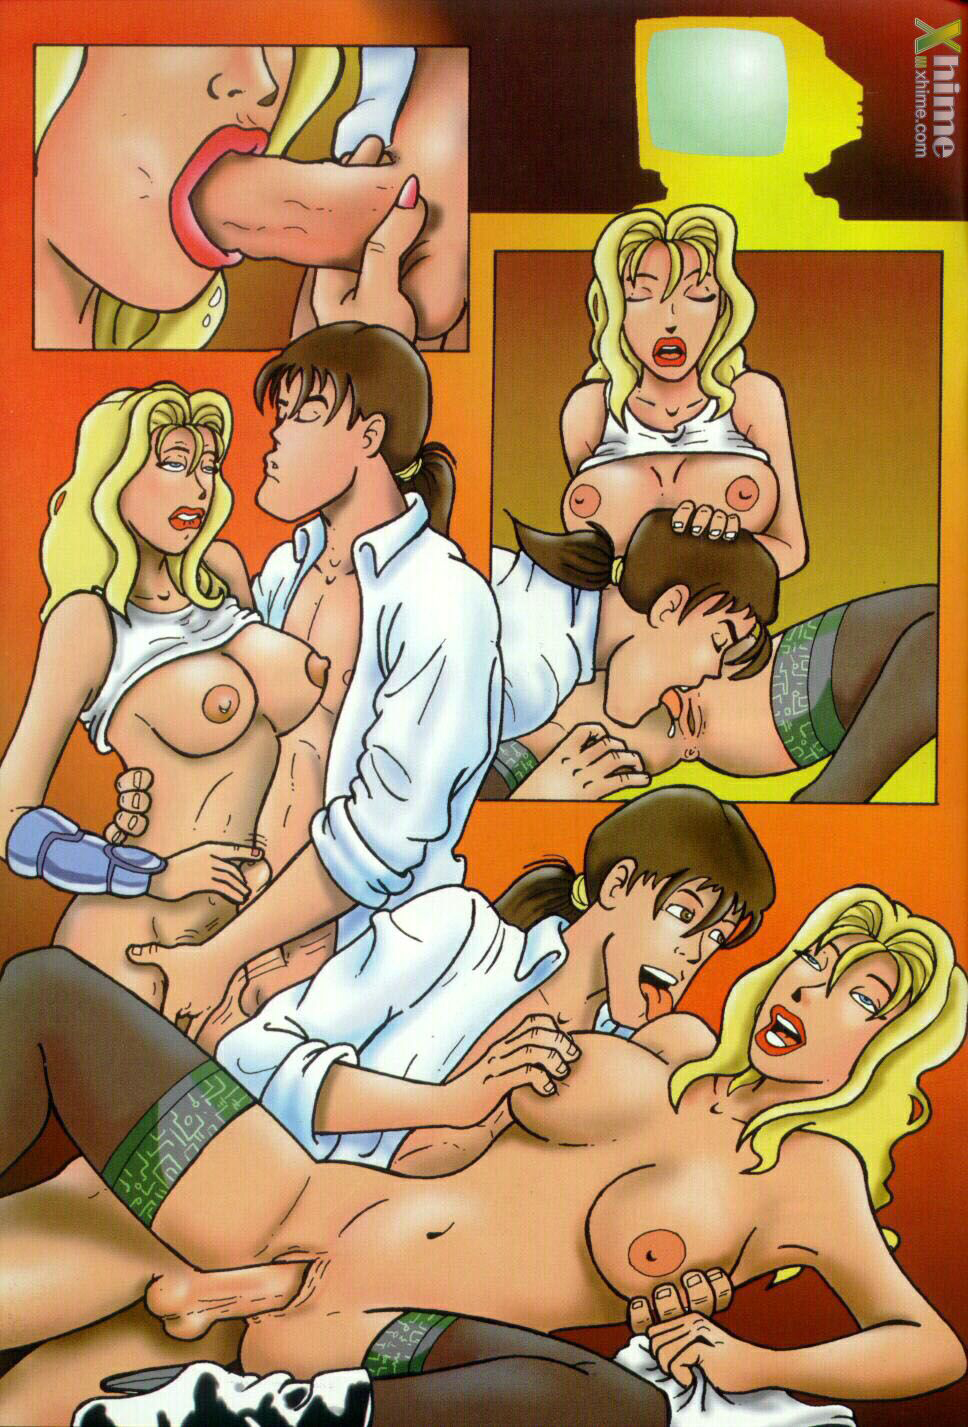 Cartoon sex world images sexy gallery